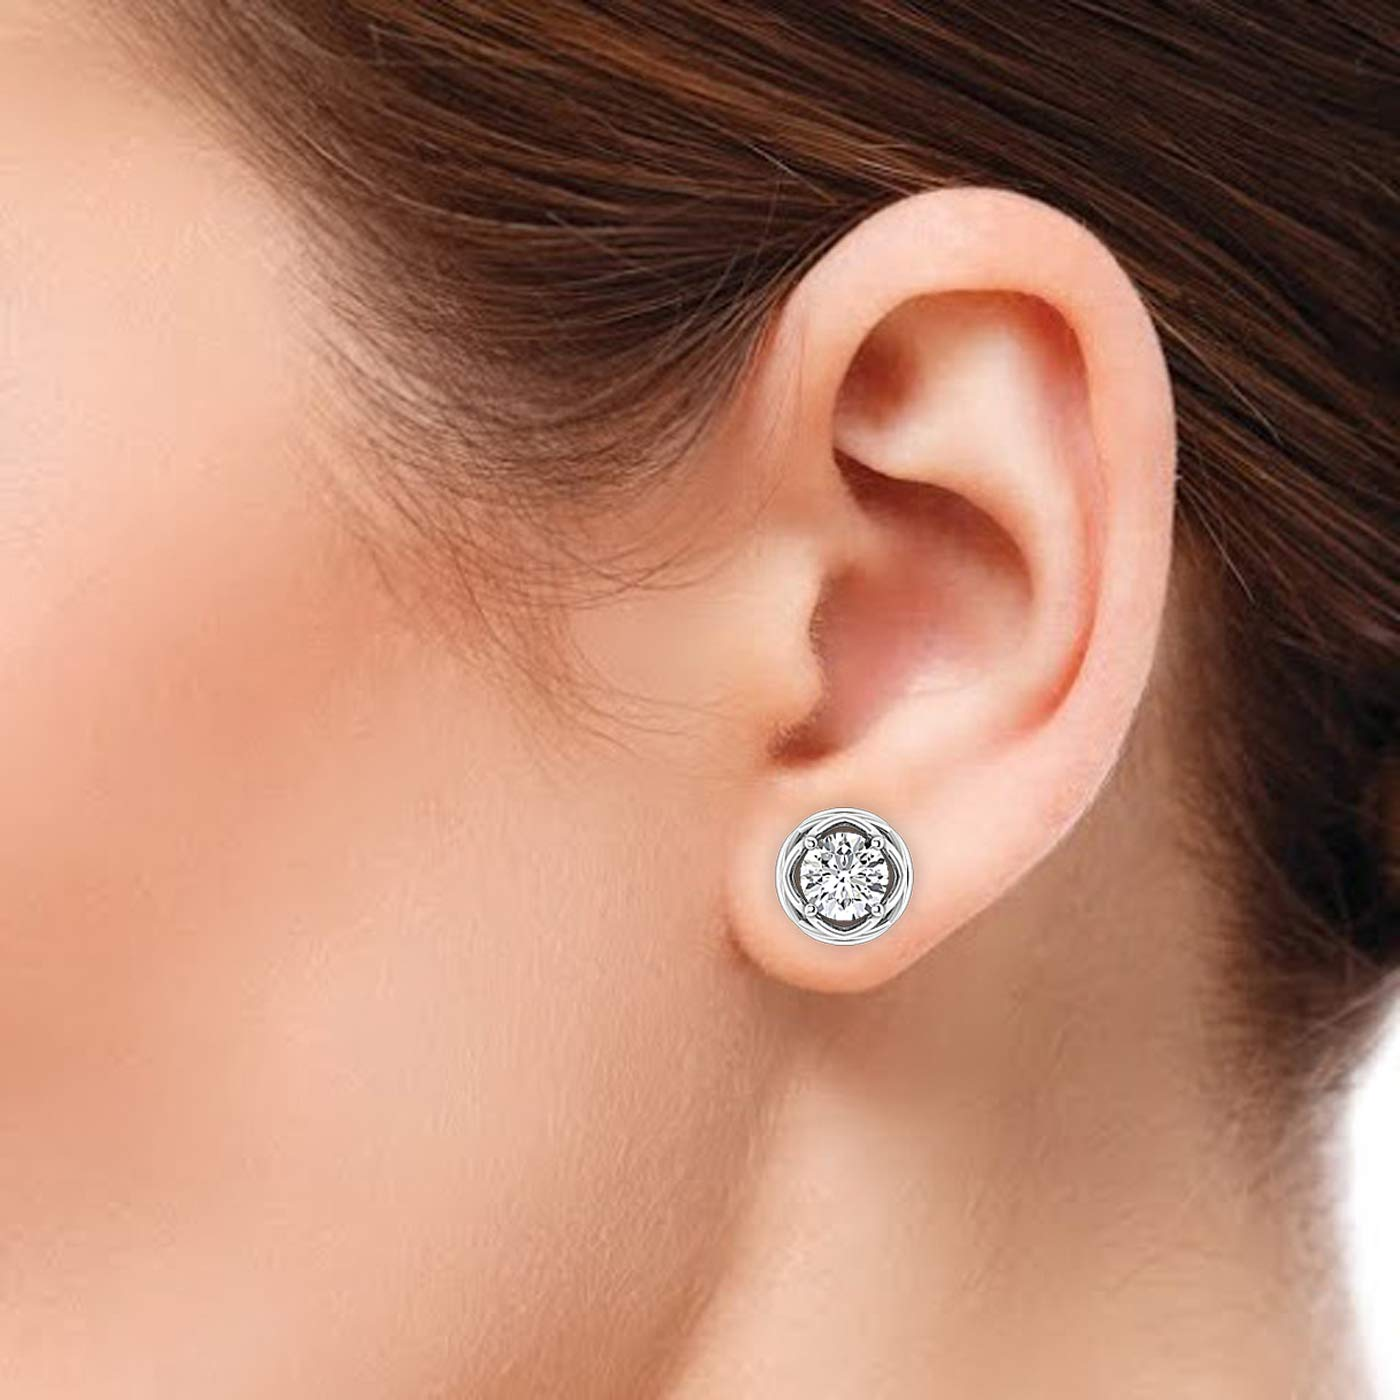 GH//VVS Stud Earrings for Women perfect Jewelry Gifts for Women Teen Girls Round Brilliant /Pure Gold // 925 Sterling Silver Earring Studs 0.3 to 4 Carat Moissanite Stud Earrings